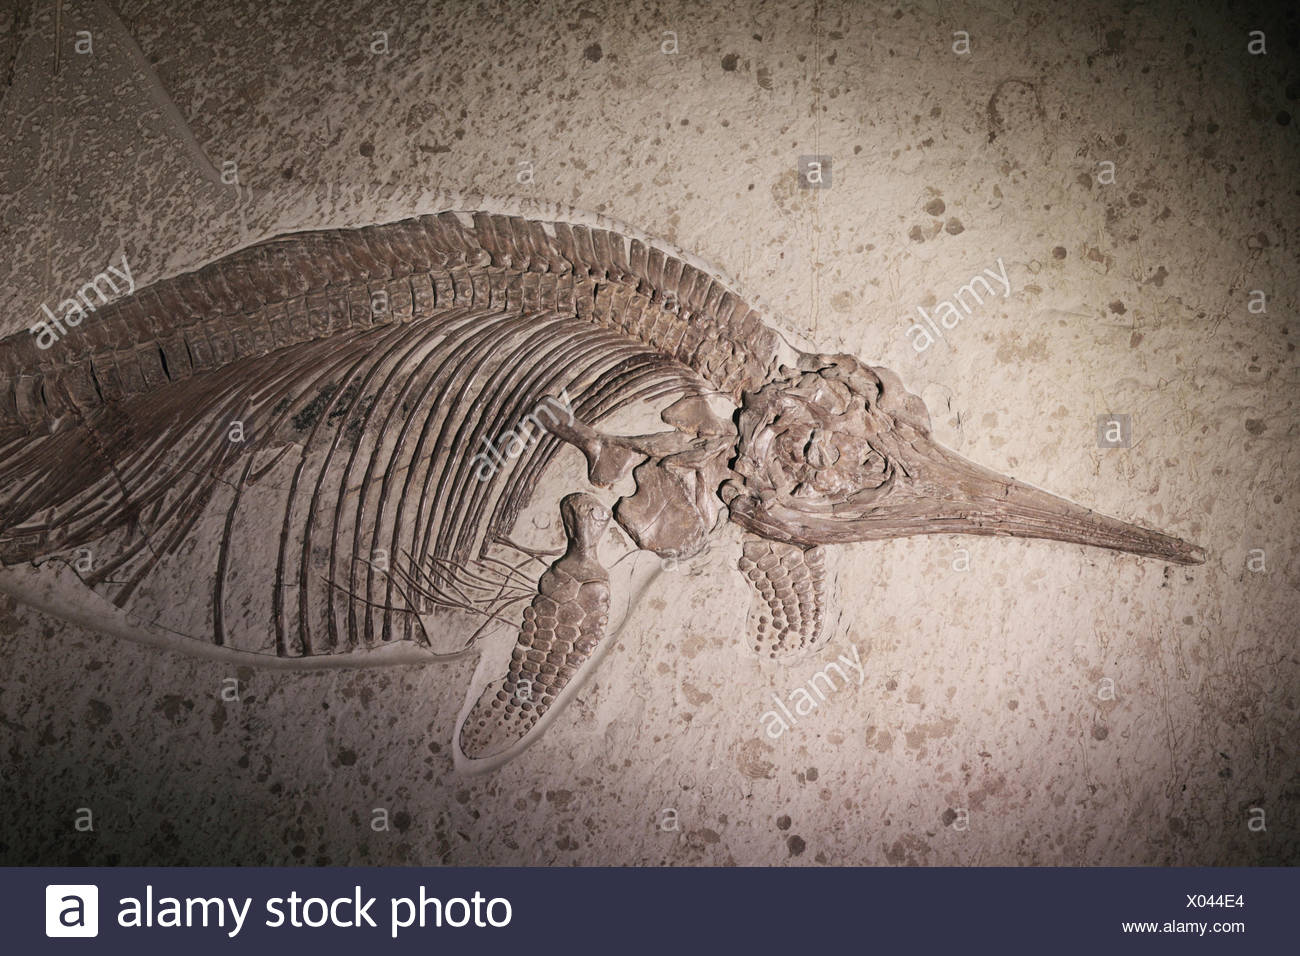 Fossil of Stenopterygius, formerly ichthyosaurus, an extinct genus of thunnosaur ichthyosaur known from Europe. It maximum length was 4 meters. - Stock Image